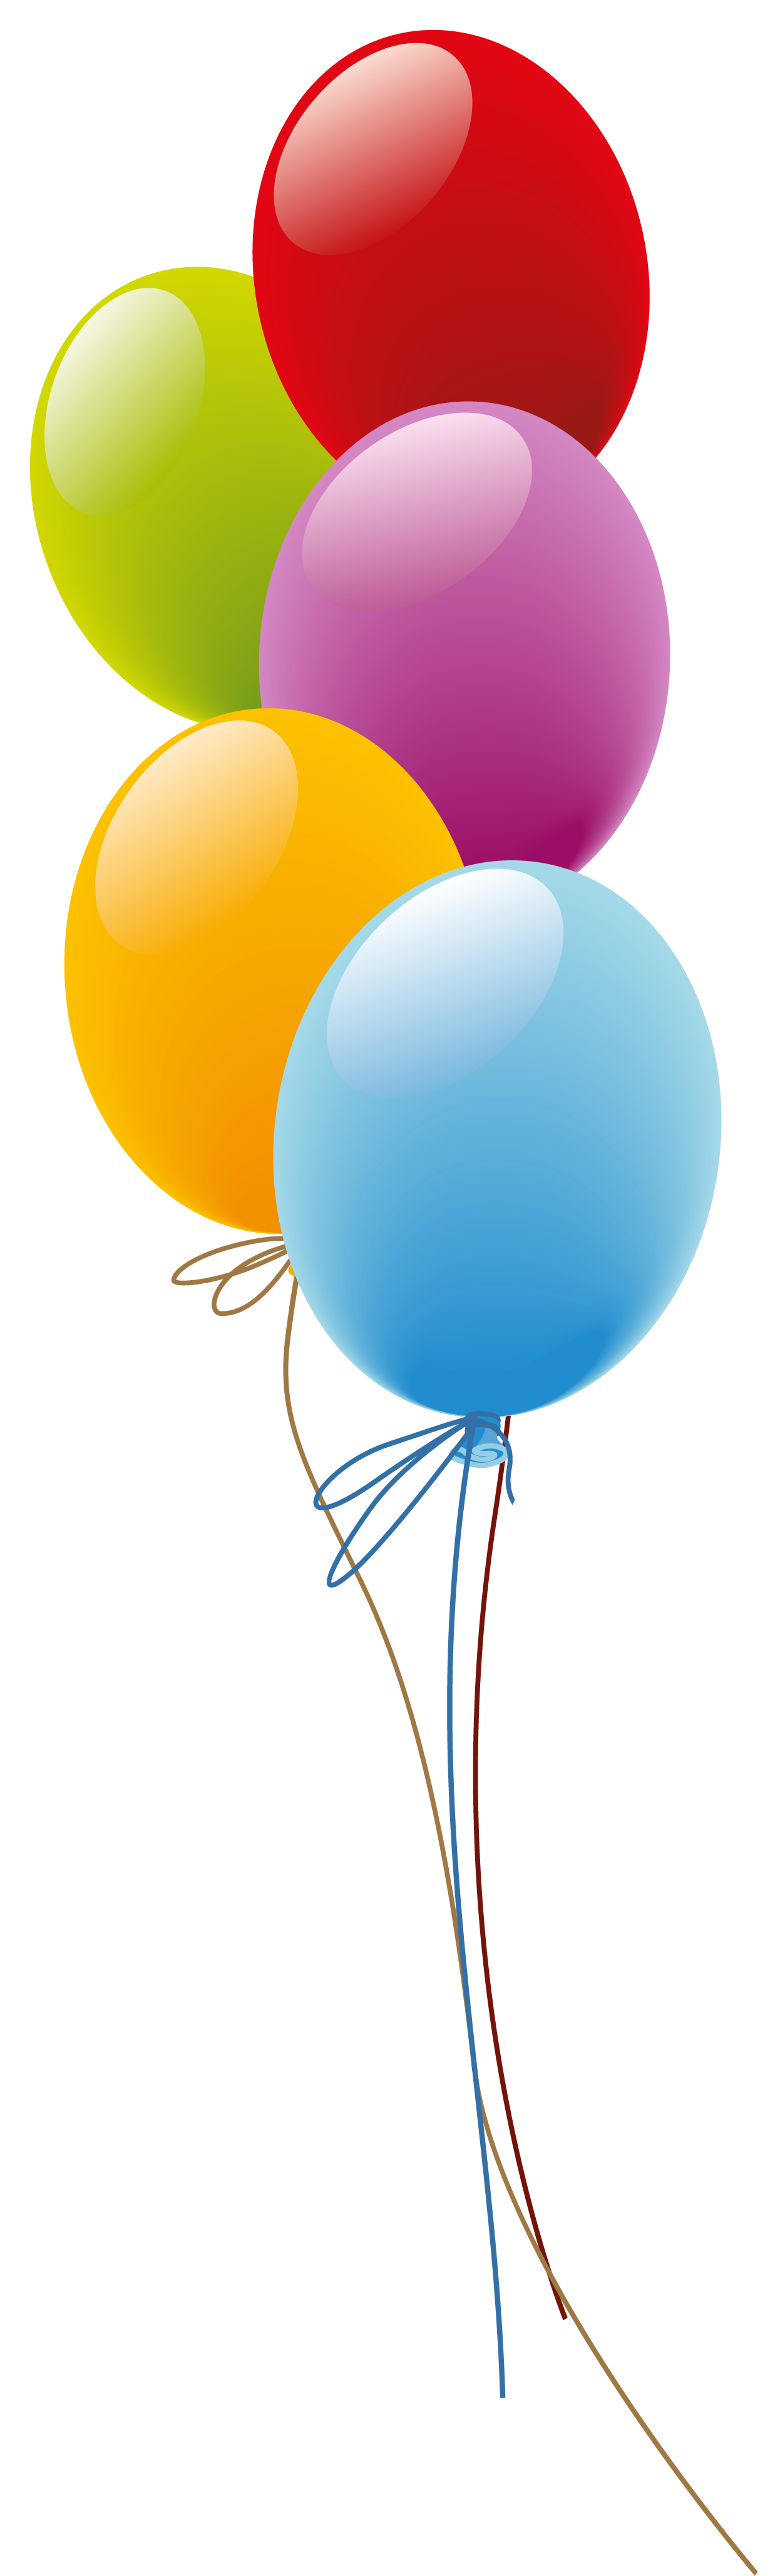 1246x4117 Balloons Png Picture Kunterbunt Birthdays, Happy